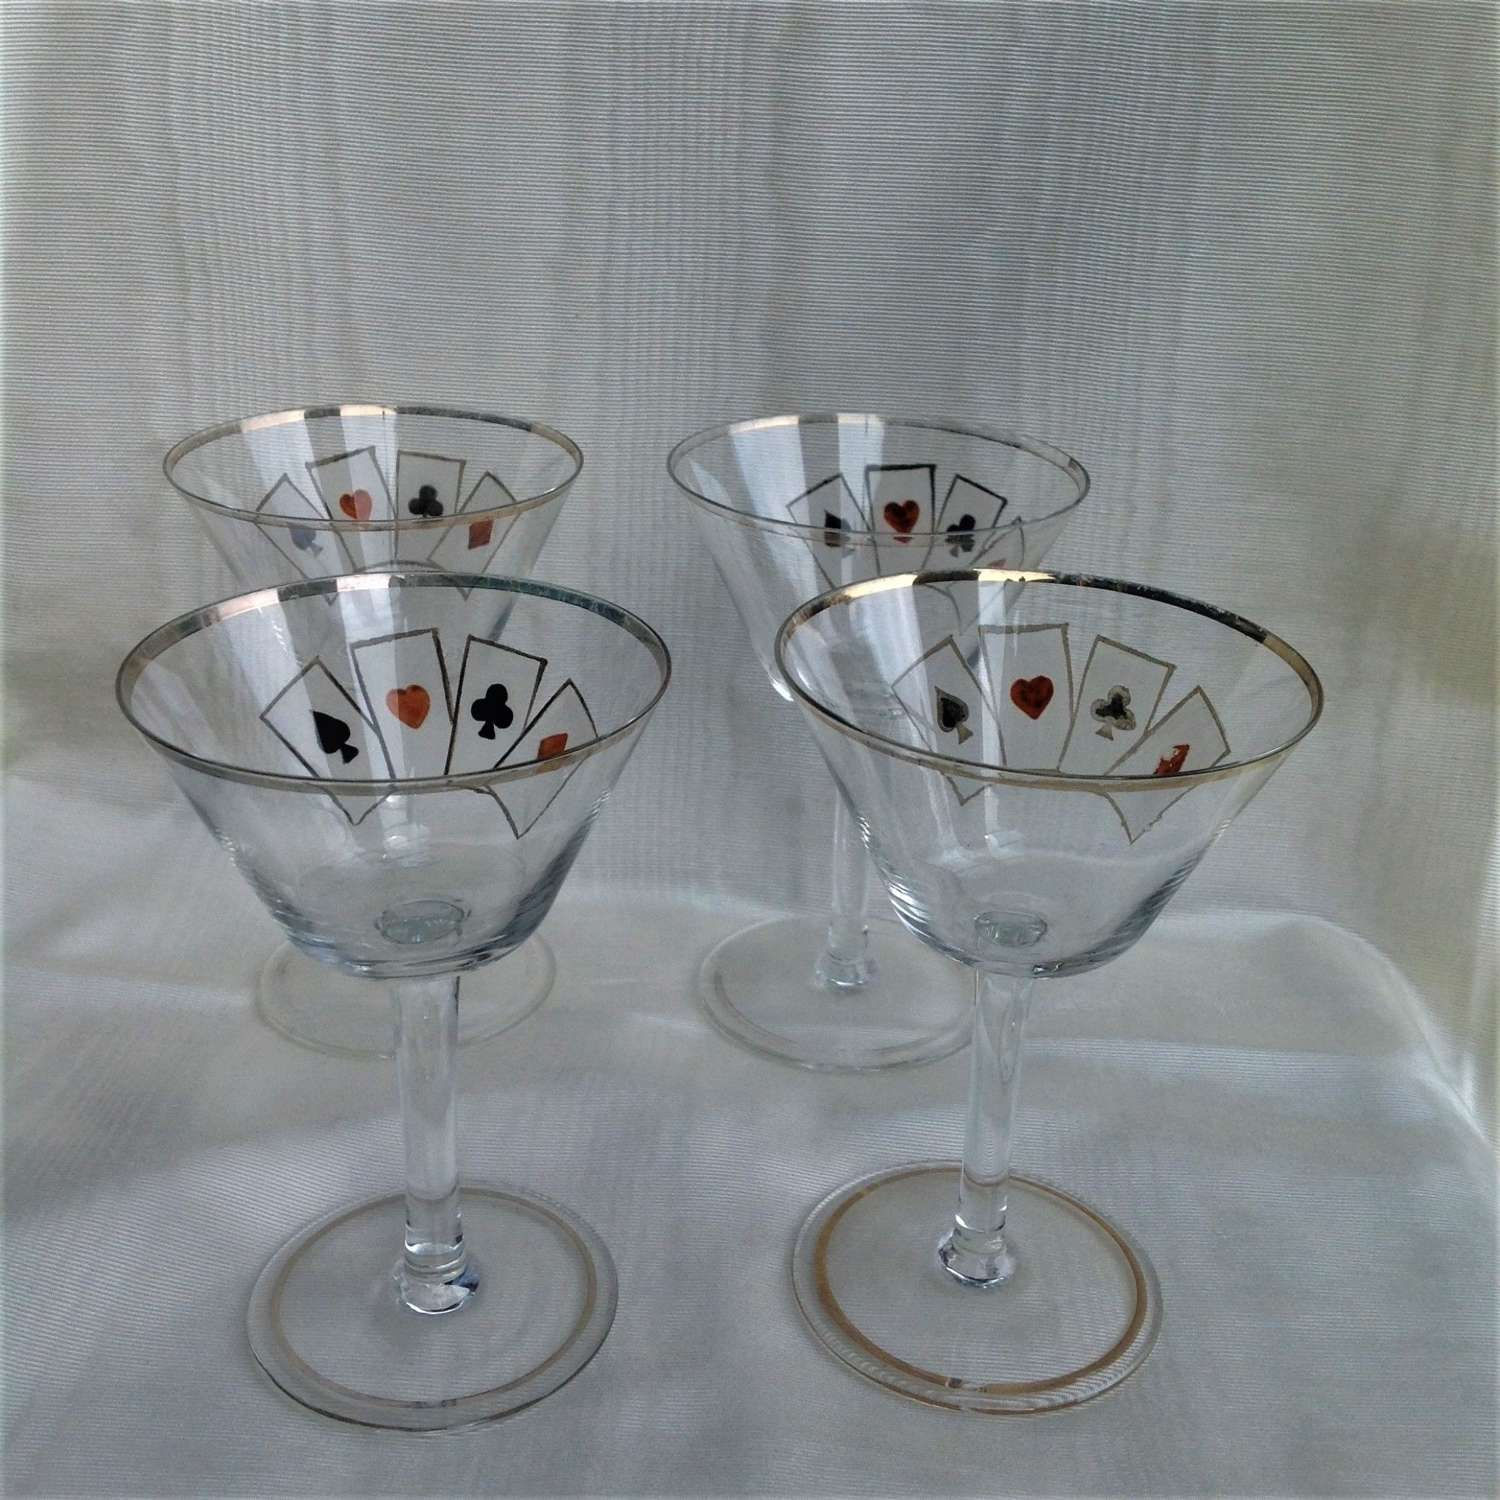 Four delicate hand-enamelled art deco playing card cocktail glasses